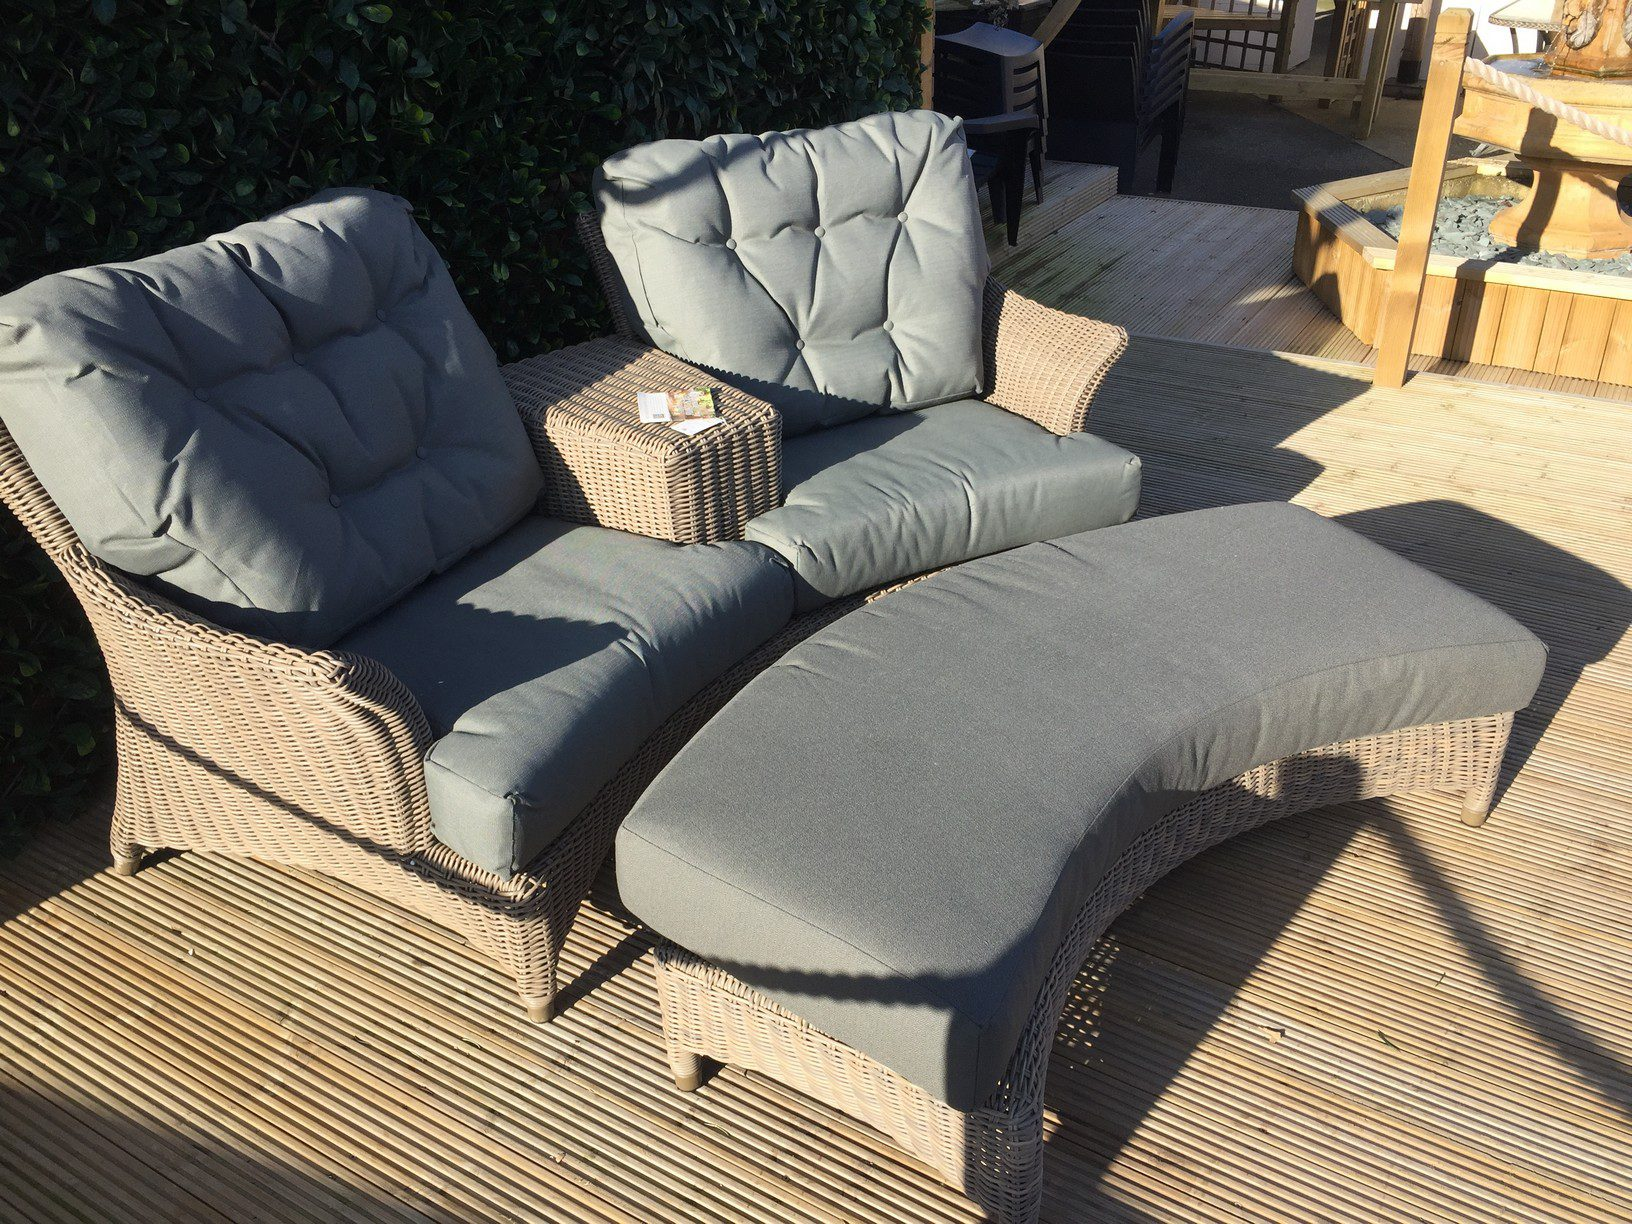 4 Seasons Outdoor Valentine Love Seat With Footrest 8